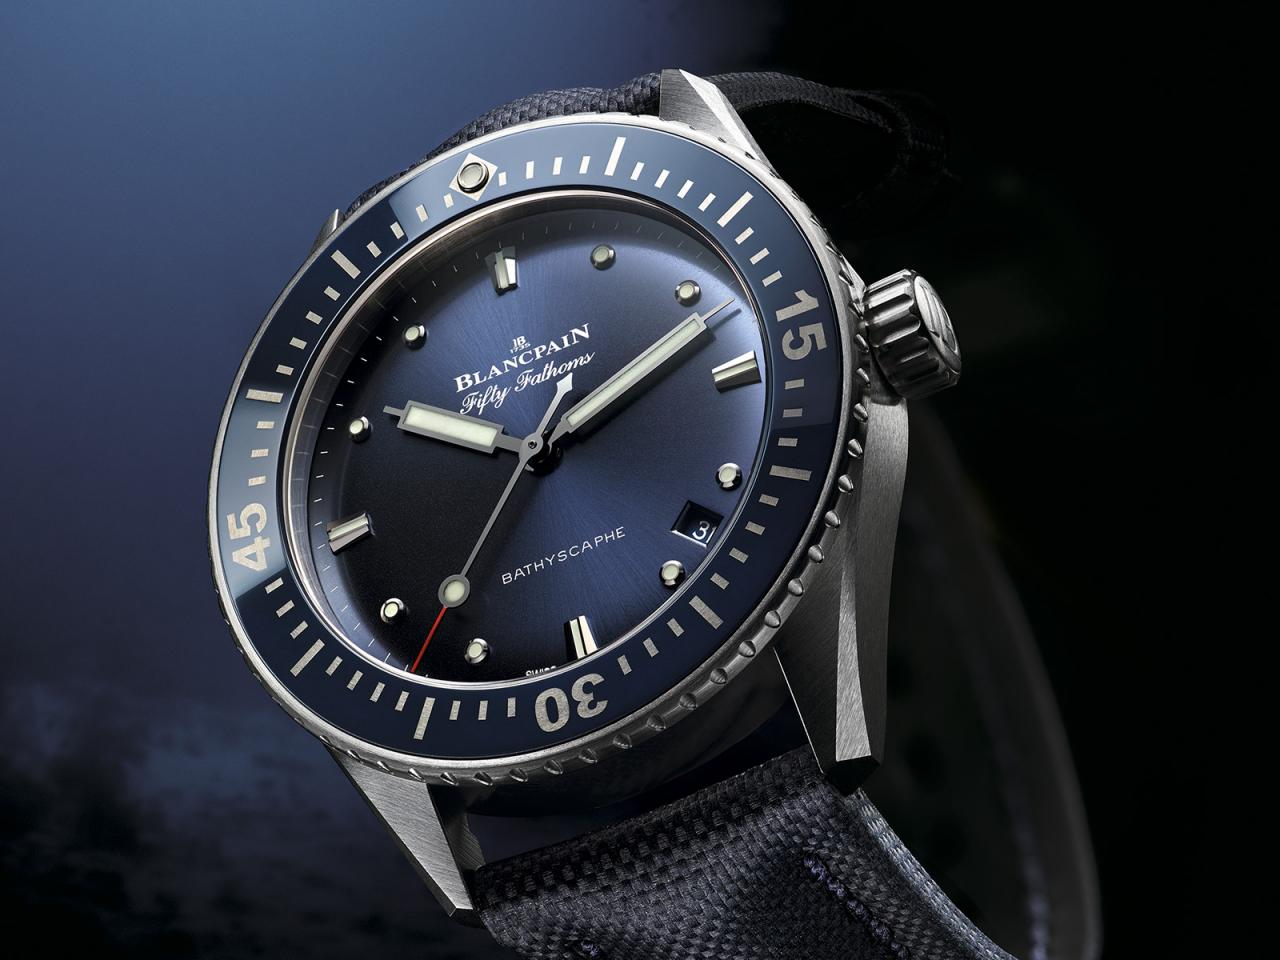 Blancpain Fifty Fathoms Bathyscaphe 38 mm